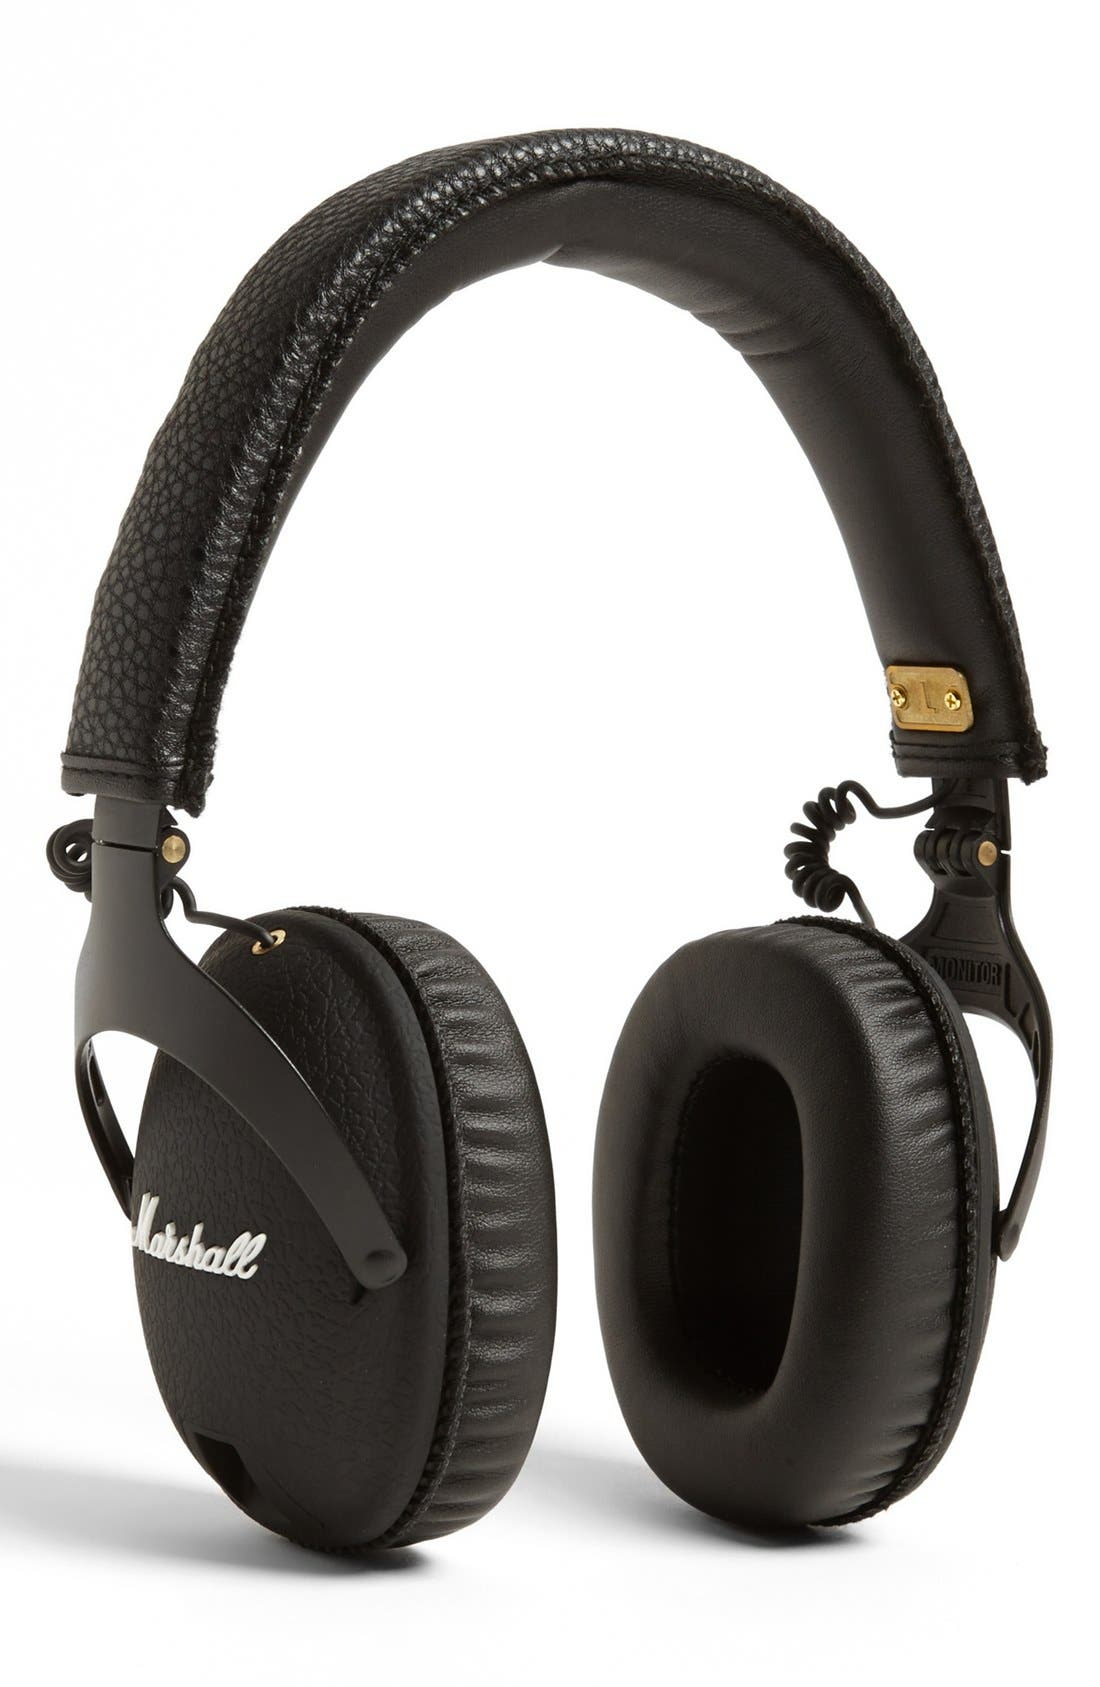 Main Image - Marshall 'Monitor' Over Ear Headphones